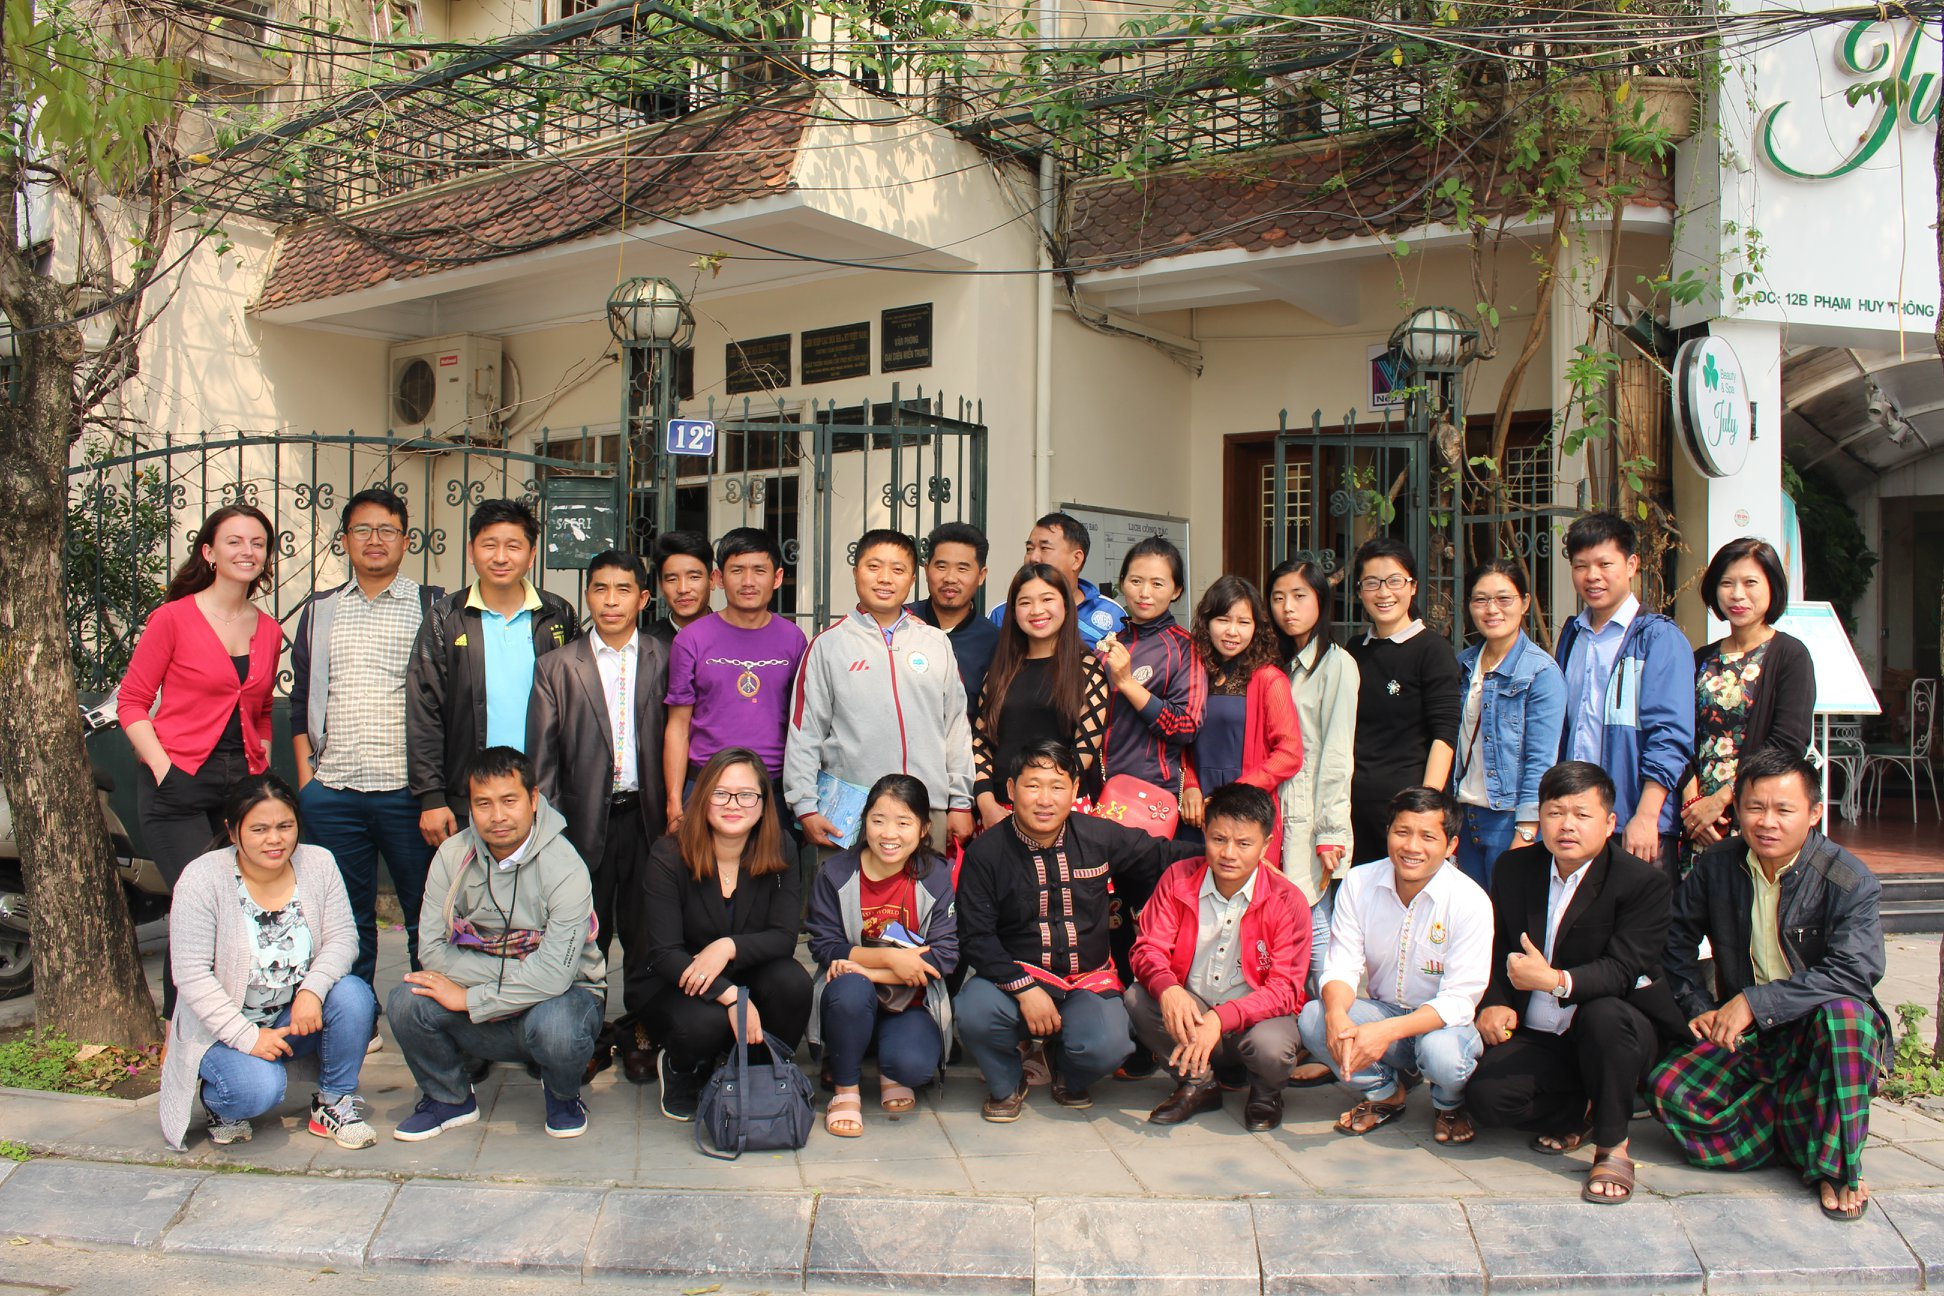 The group of activists and group from Kachin State, Myanmar visiting CENDI